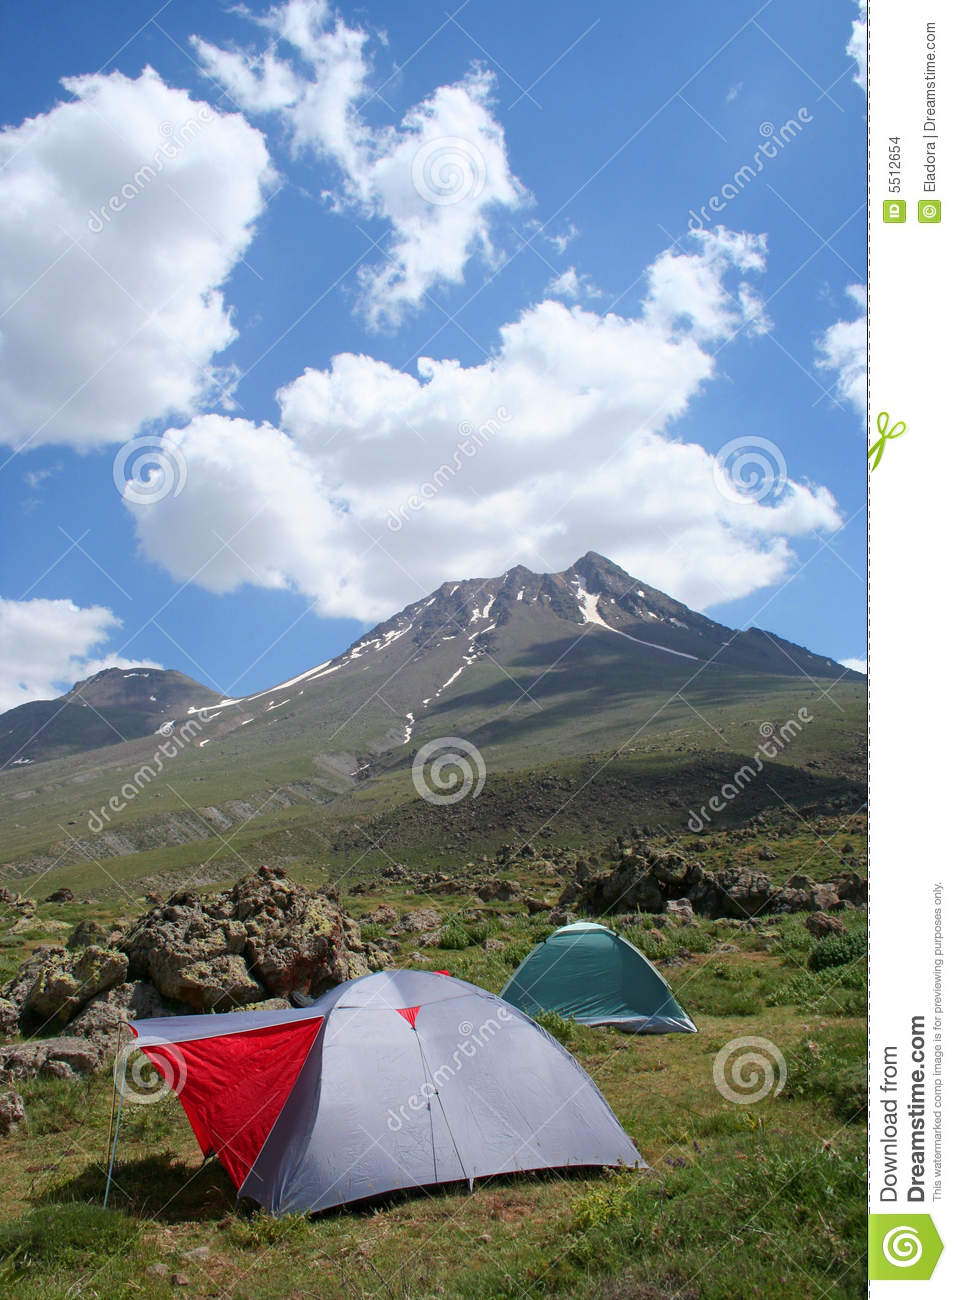 Tent On Side Of Mountain : Camping at mountain side stock images image